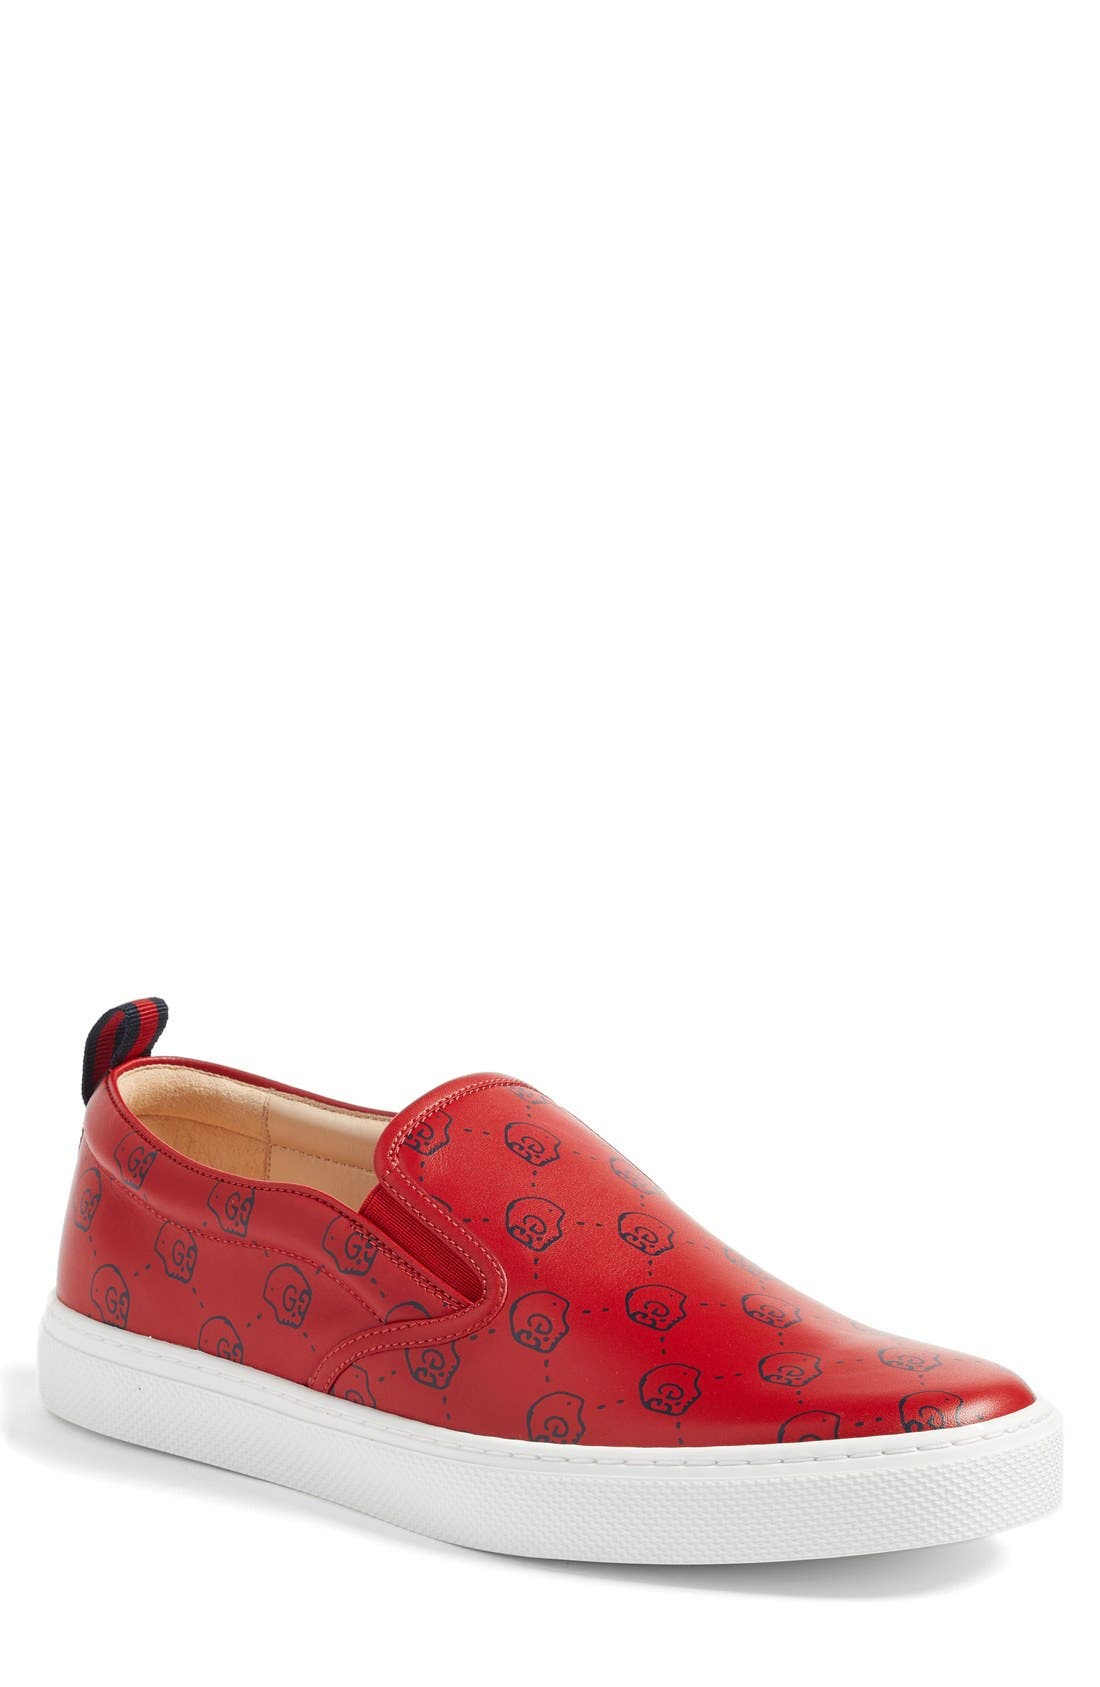 Dublin Slip-On Sneaker,                         Main,                         color, Red Multi Leather